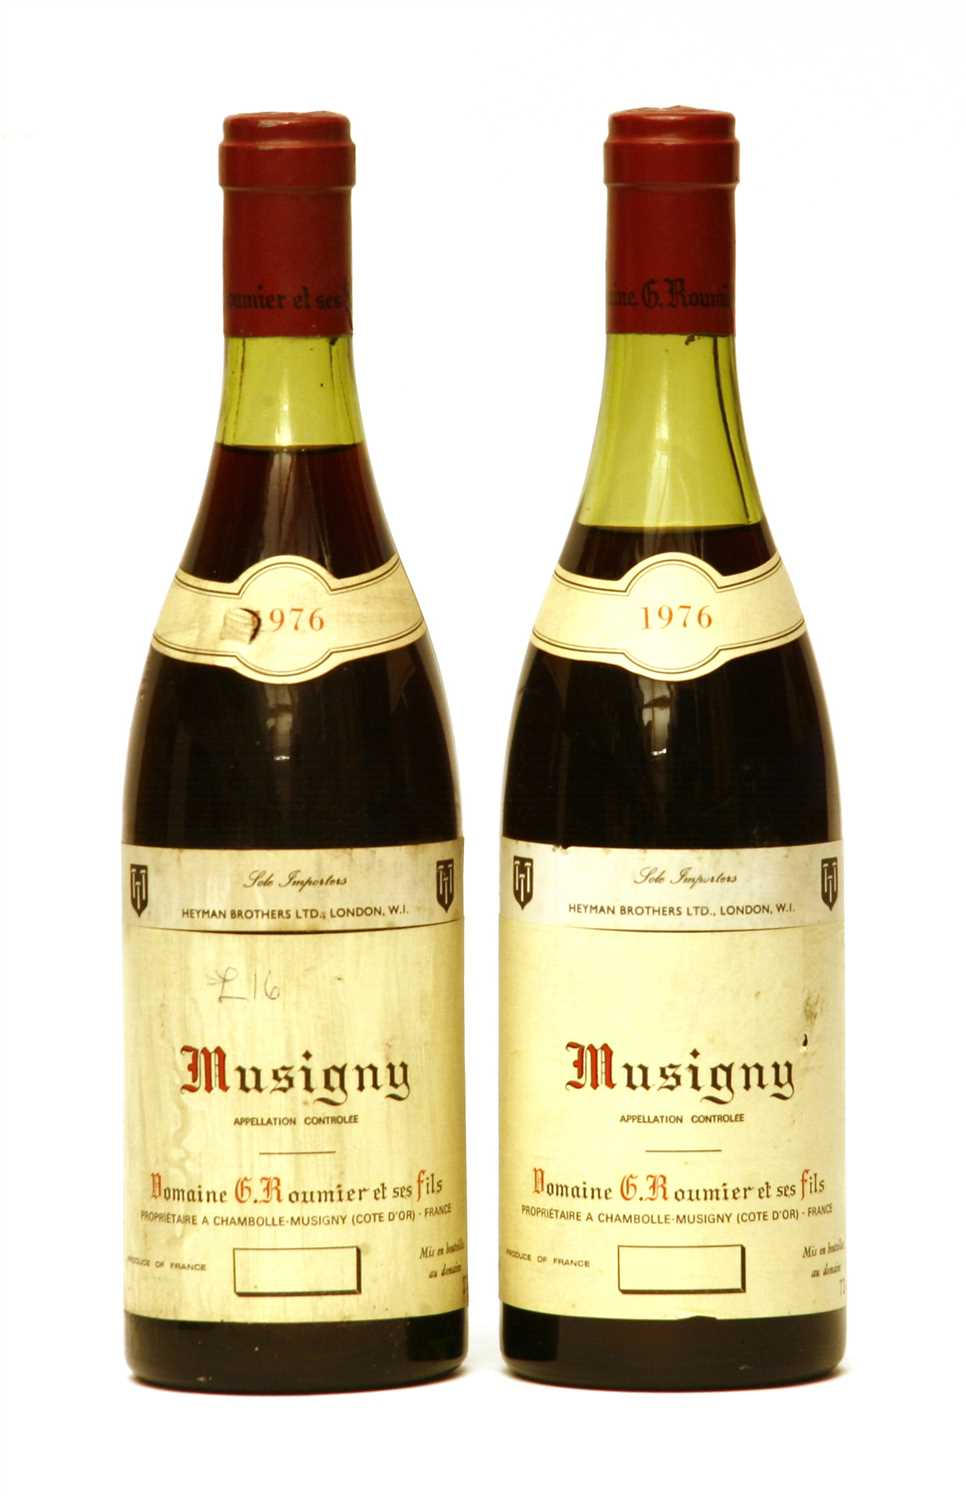 Lot 238-Domaine G. Roumier, Musigny, 1976, two bottles